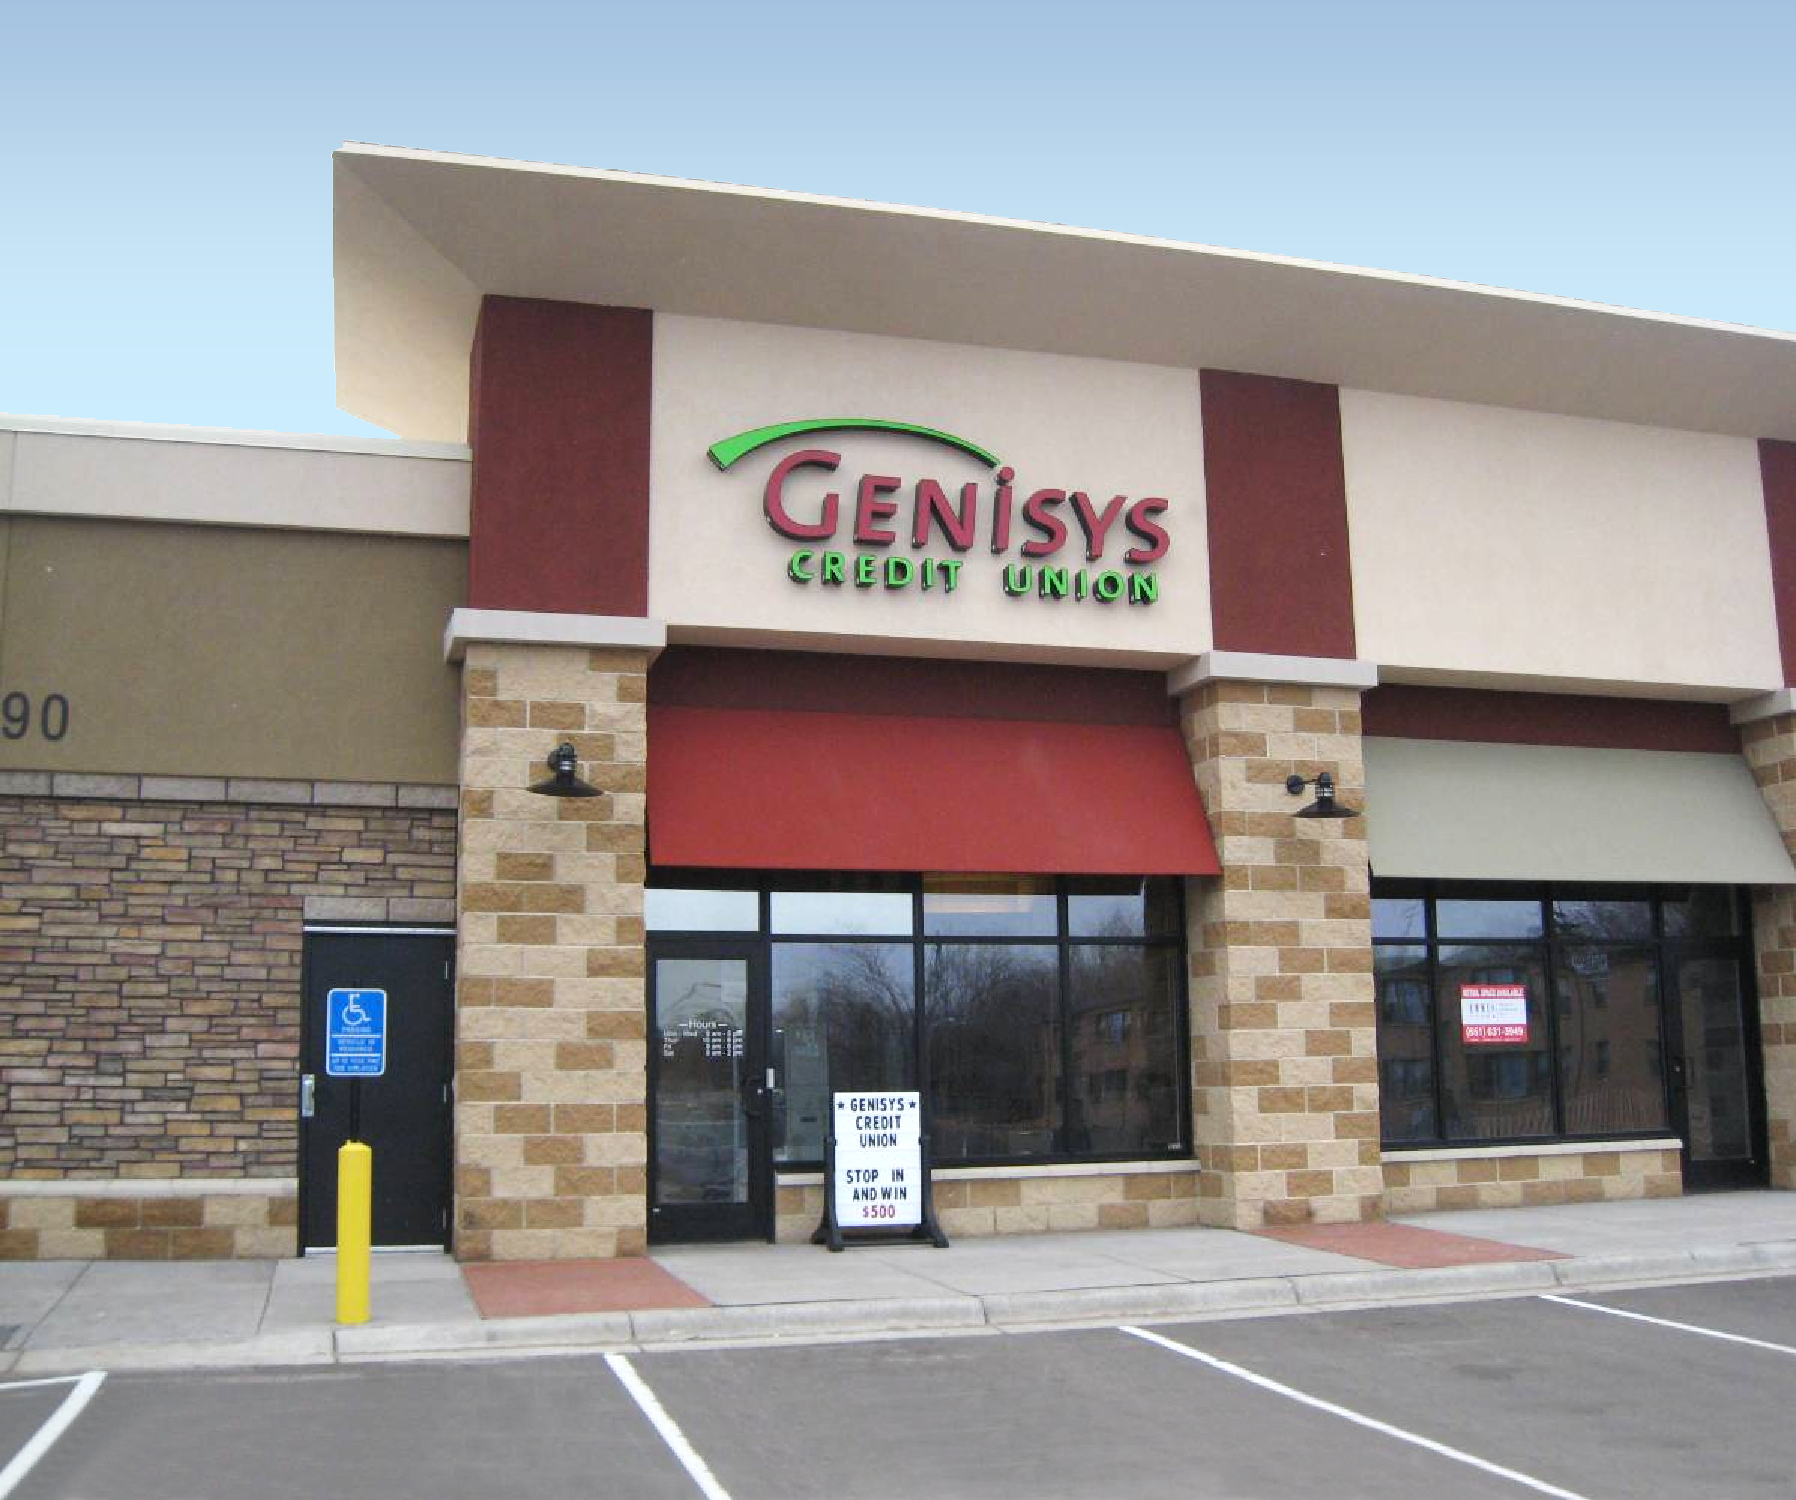 Genisys Credit Union in Roseville, MN